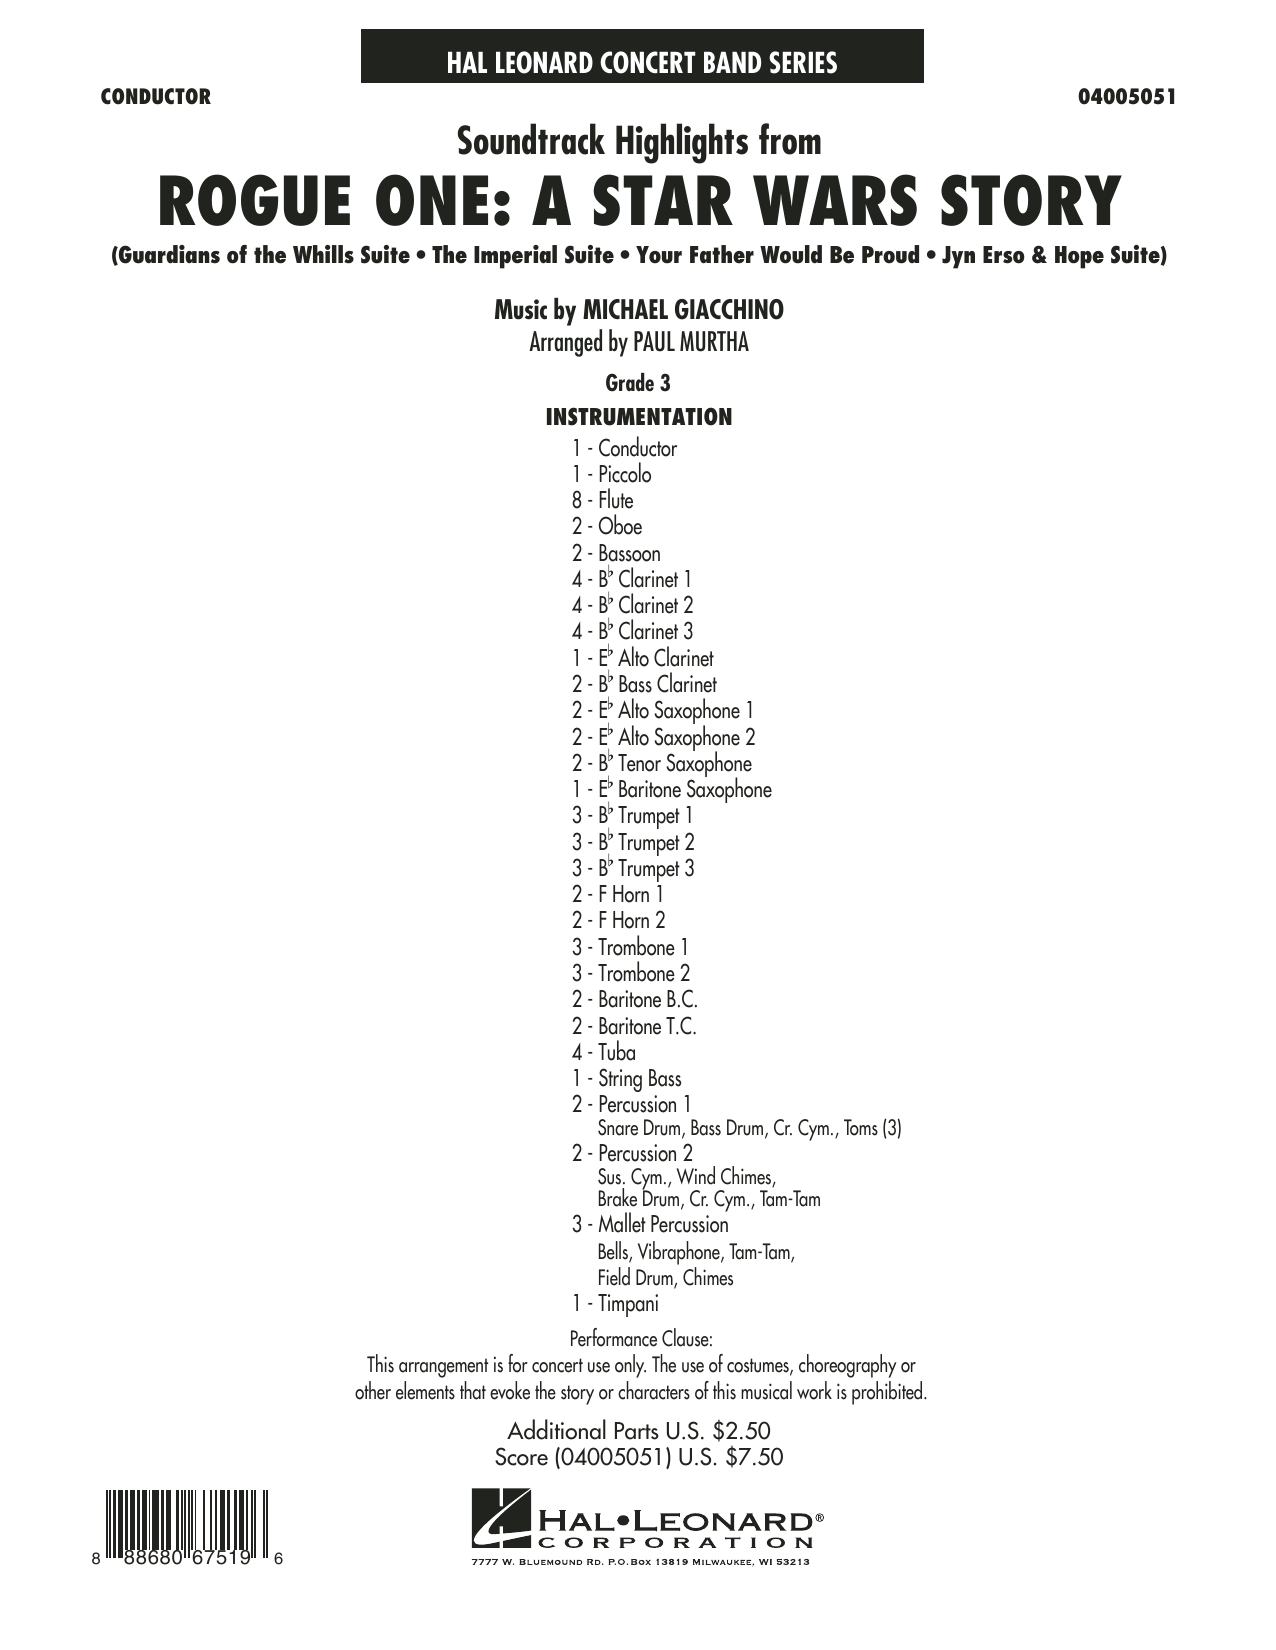 Rogue One: A Star Wars Story - Conductor Score (Full Score) Sheet Music